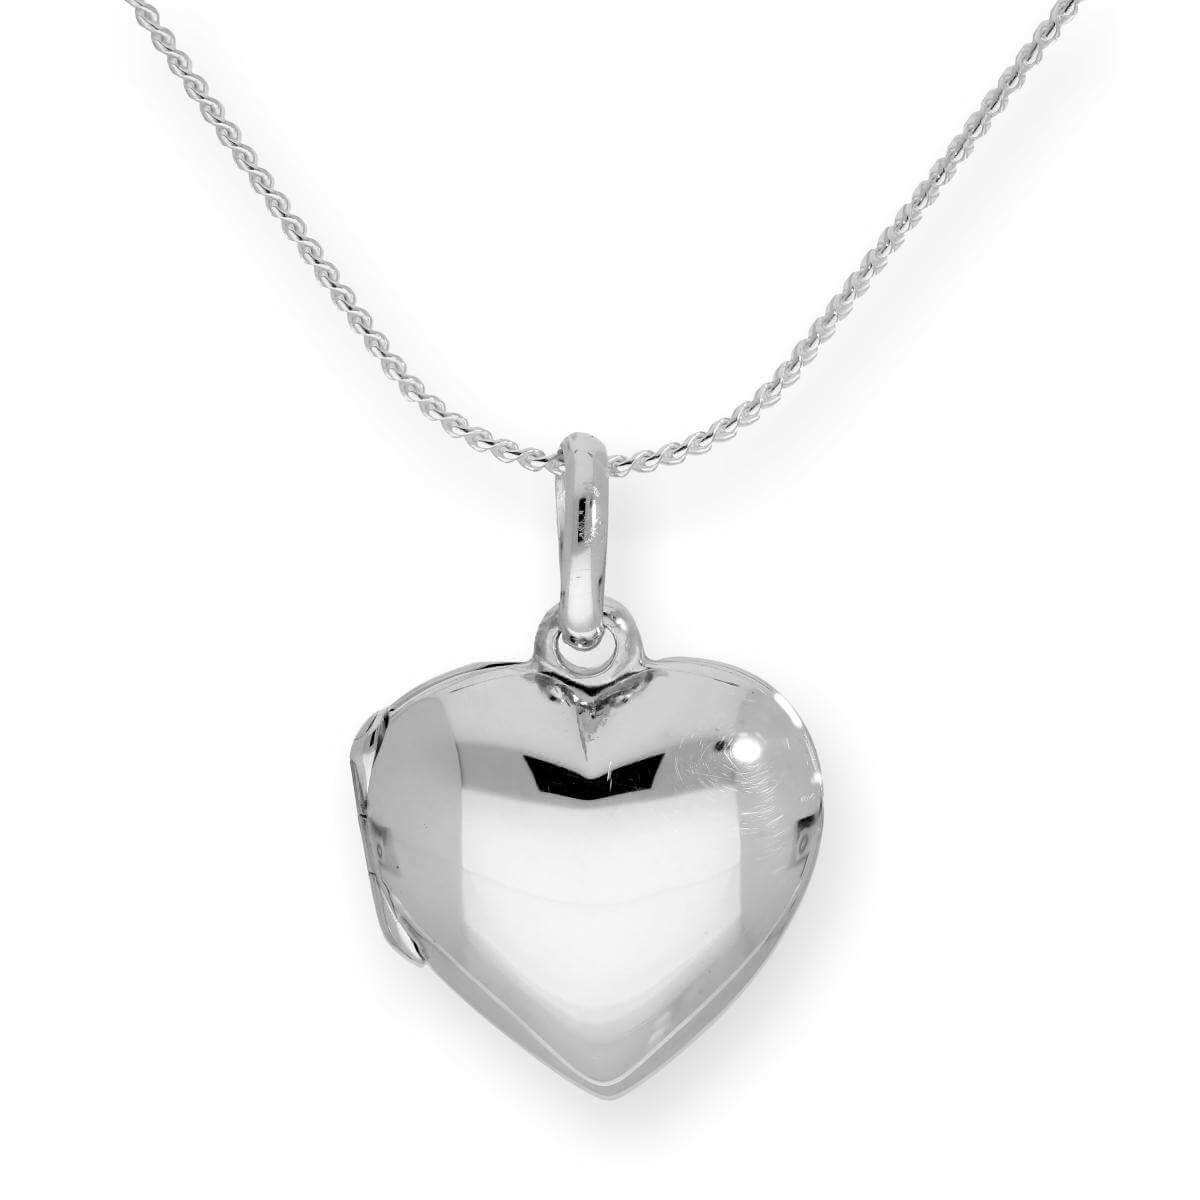 Sterling Silver Engravable Puffed Heart Locket on Chain 16 - 22 Inches